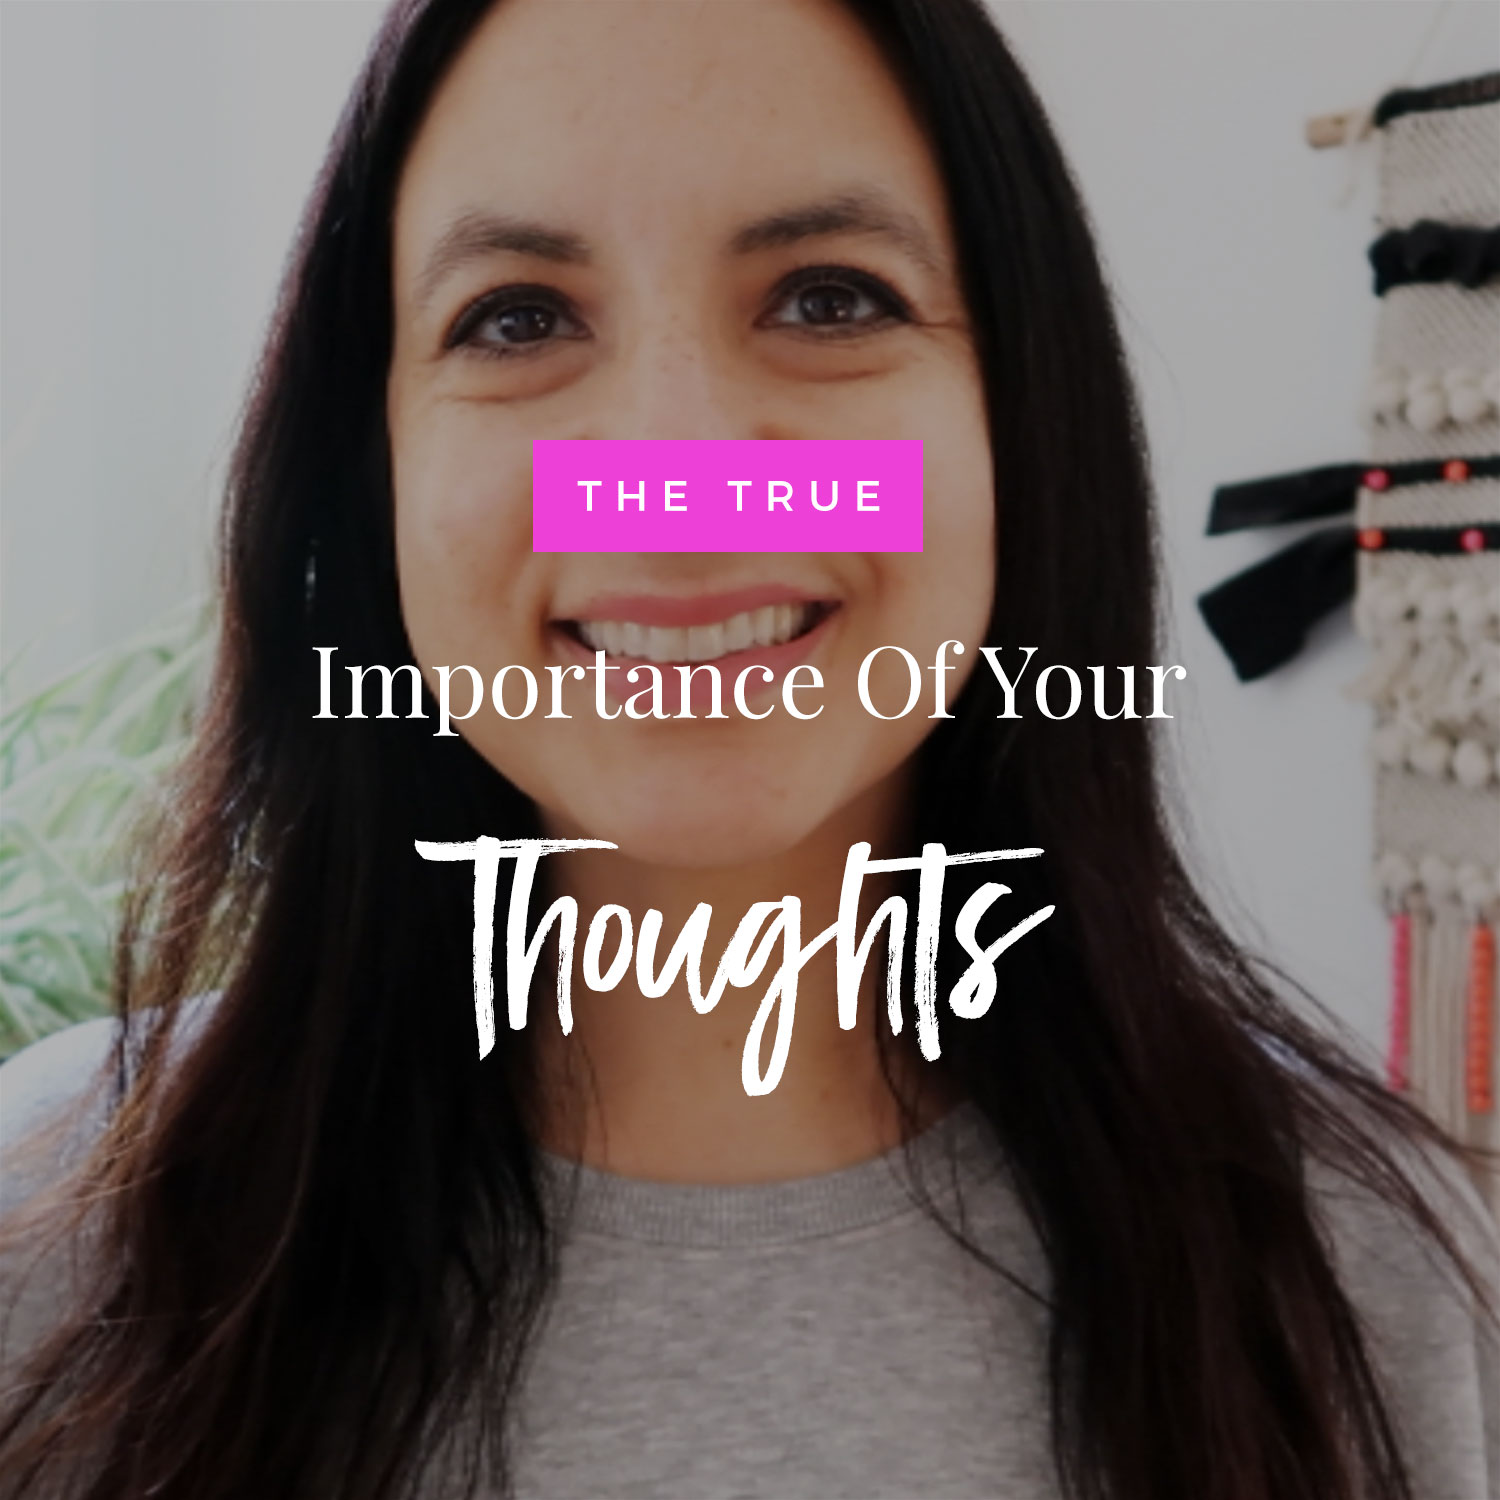 The True Importance Of Your Thoughts